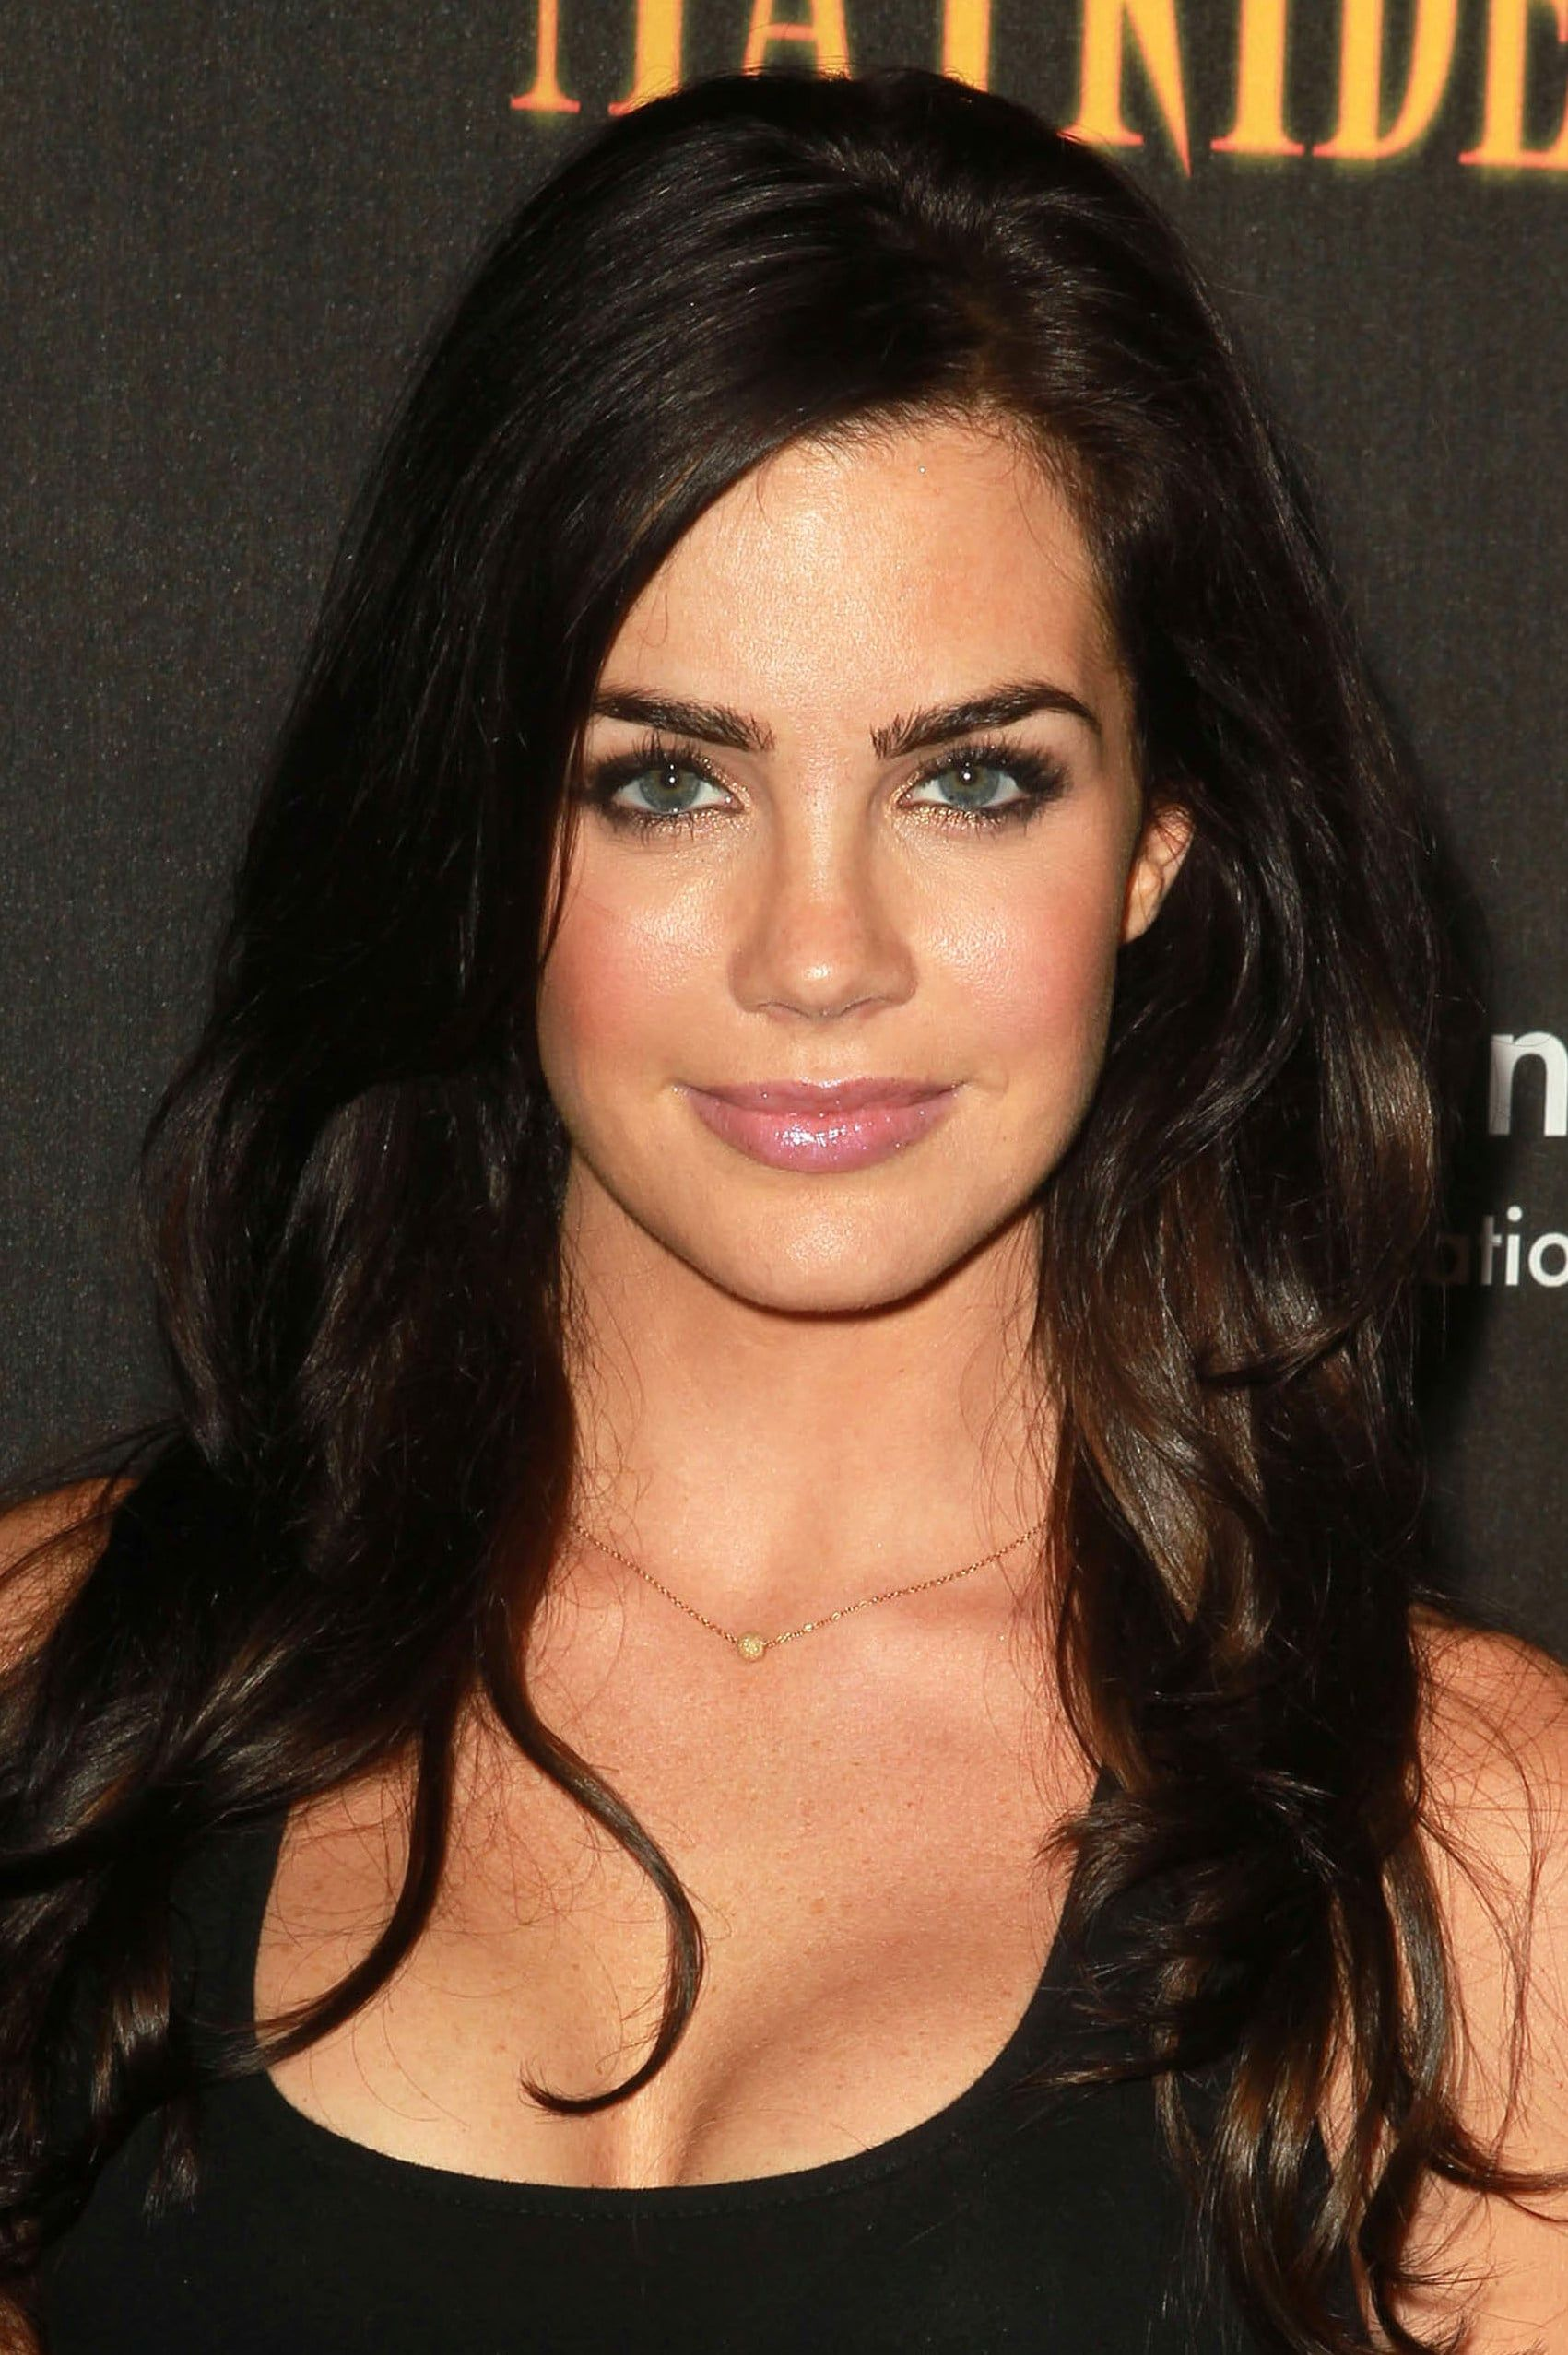 Jillian Murray nude photos 2019